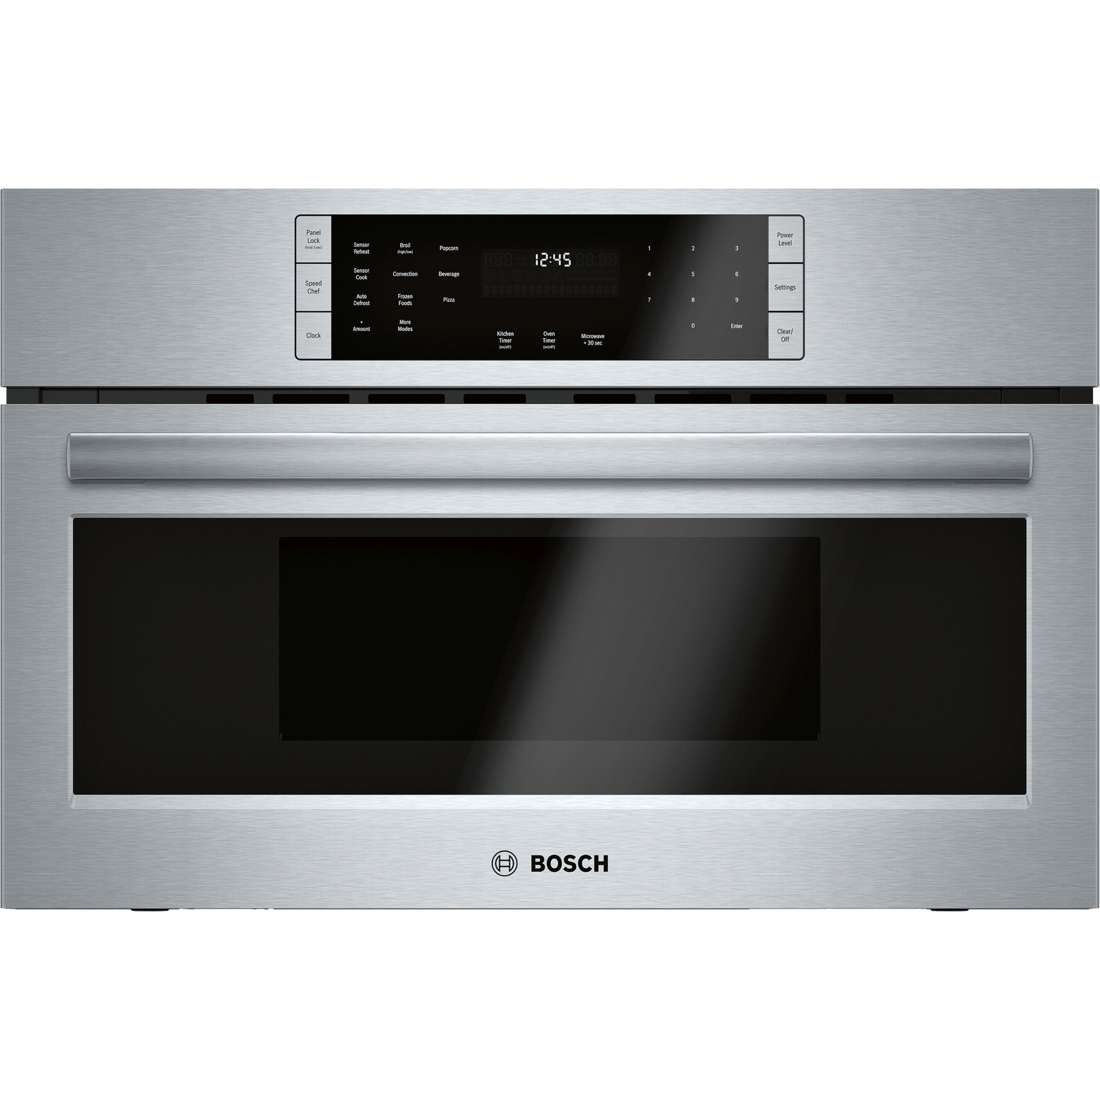 Hmcp0252uc By Bosch Wall Ovens Goedekers Com